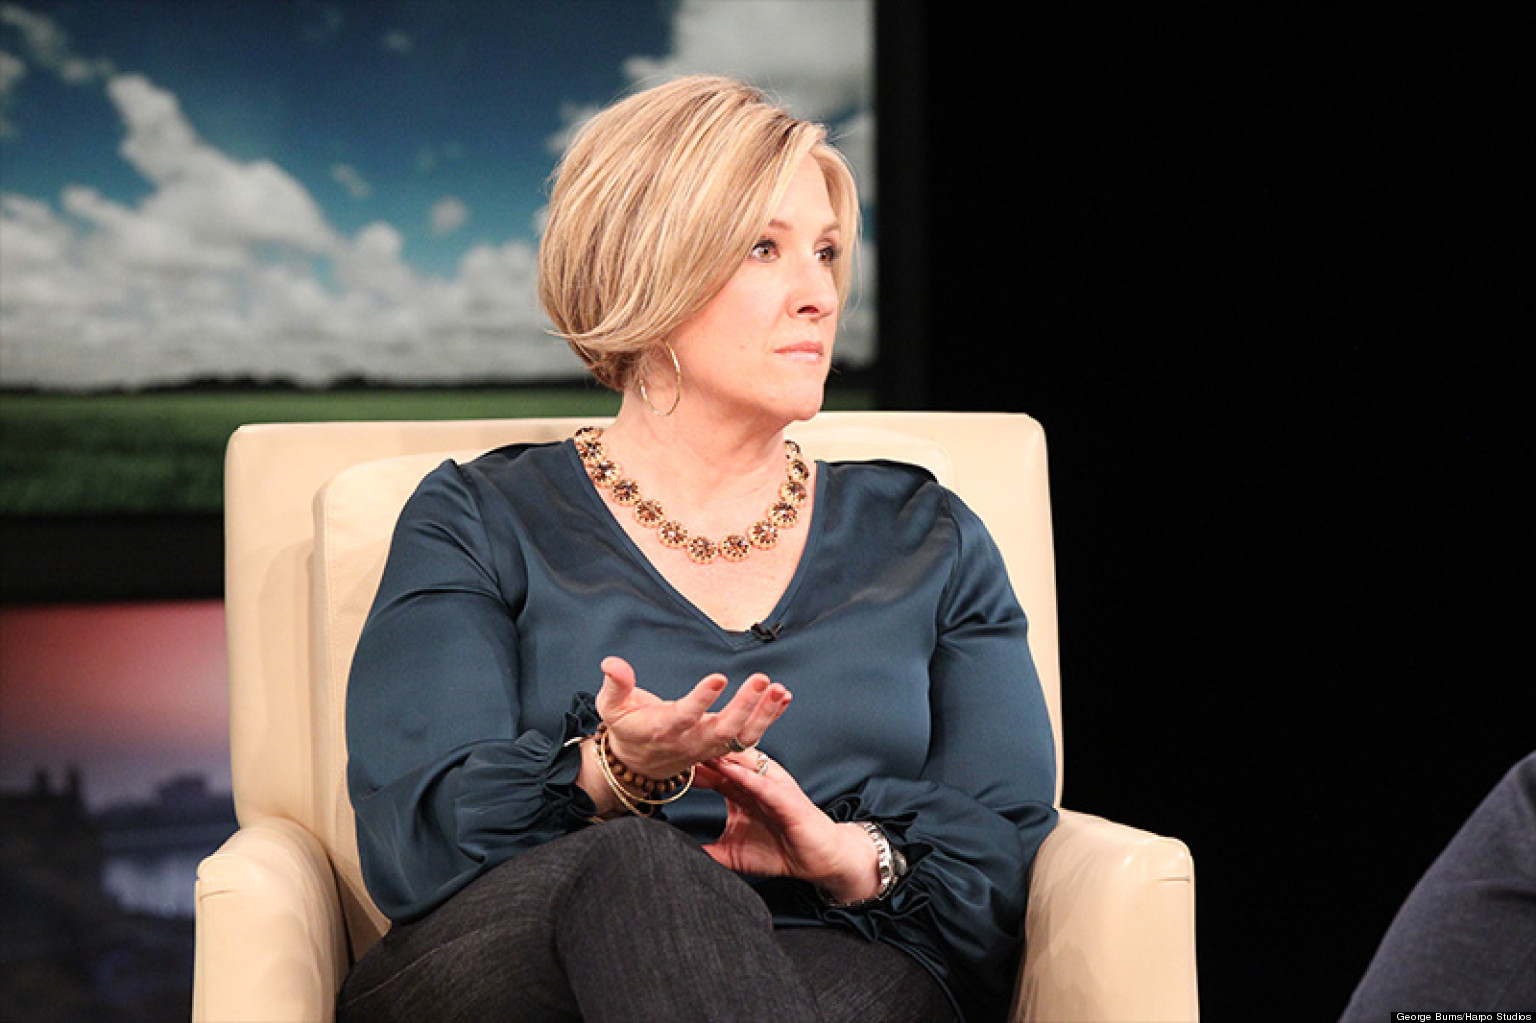 Brene Brown S Advice On Vulnerability 6 Types Of People To Never Confide In Video